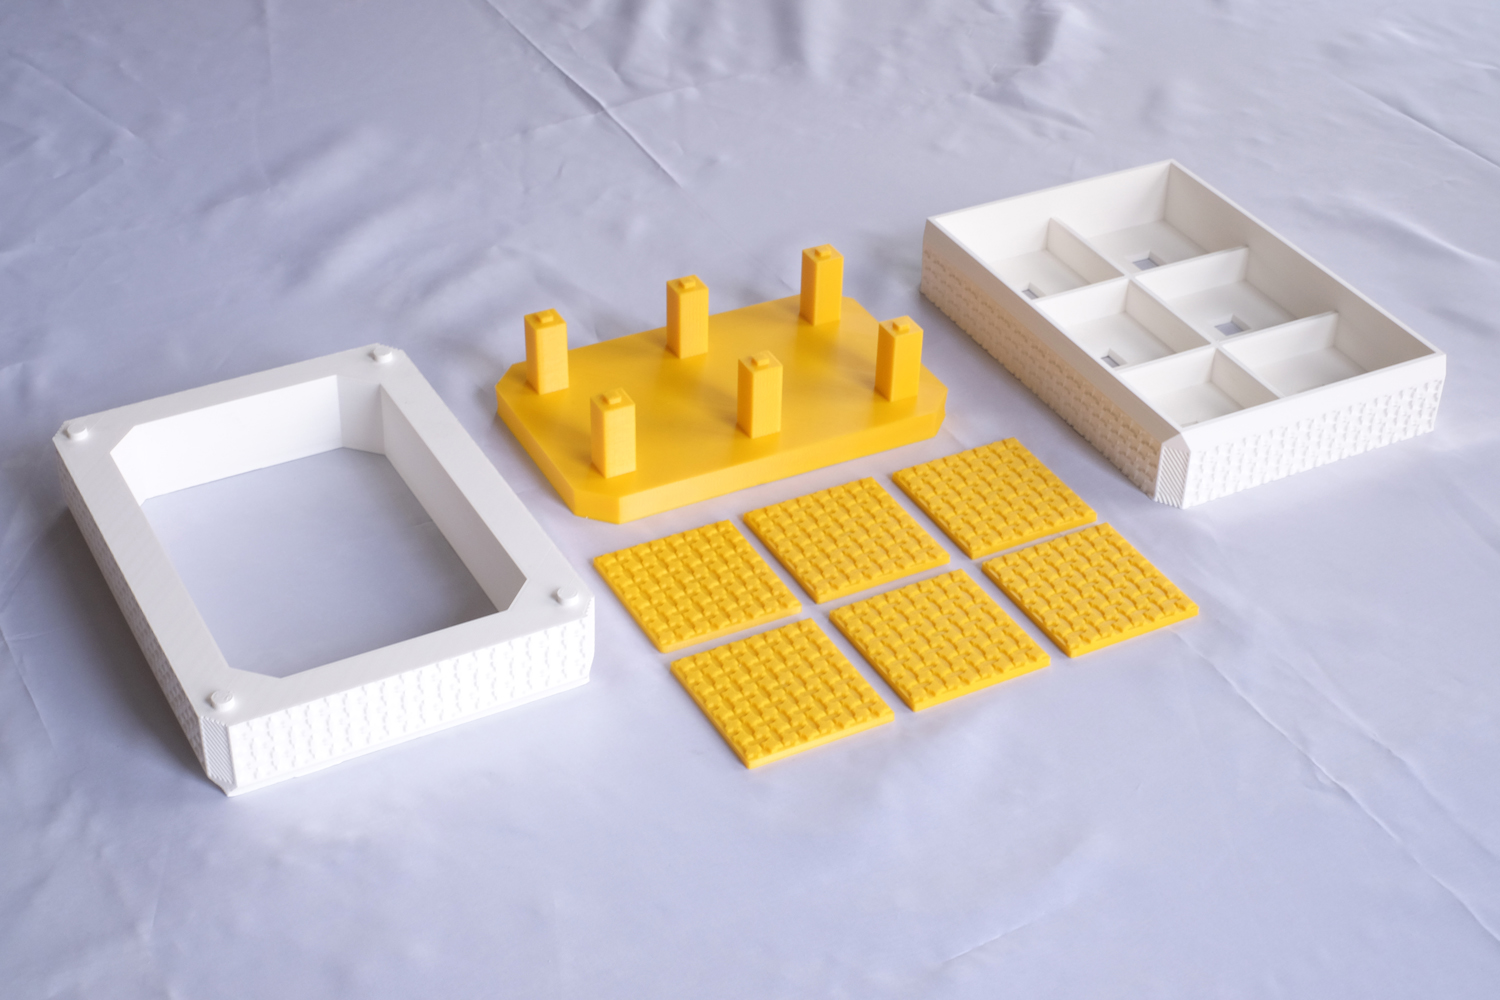 3D_PRINTED_PARTS_PROJECT_JAMEED_HASHEM_JOUCKA